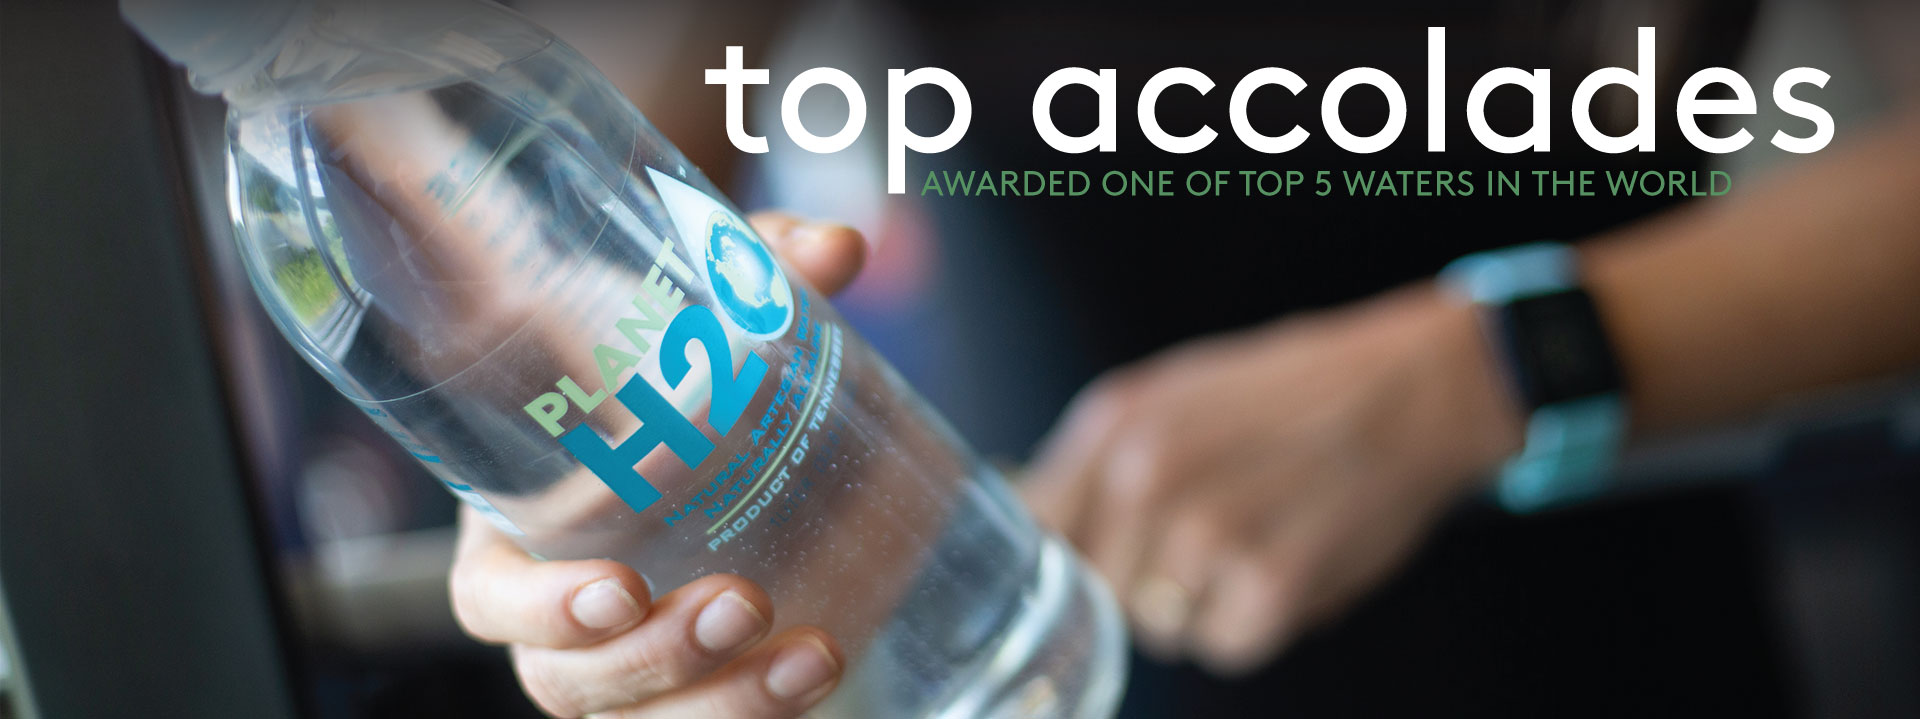 Planet H2O has been awarded one of the top 5 waters in the world